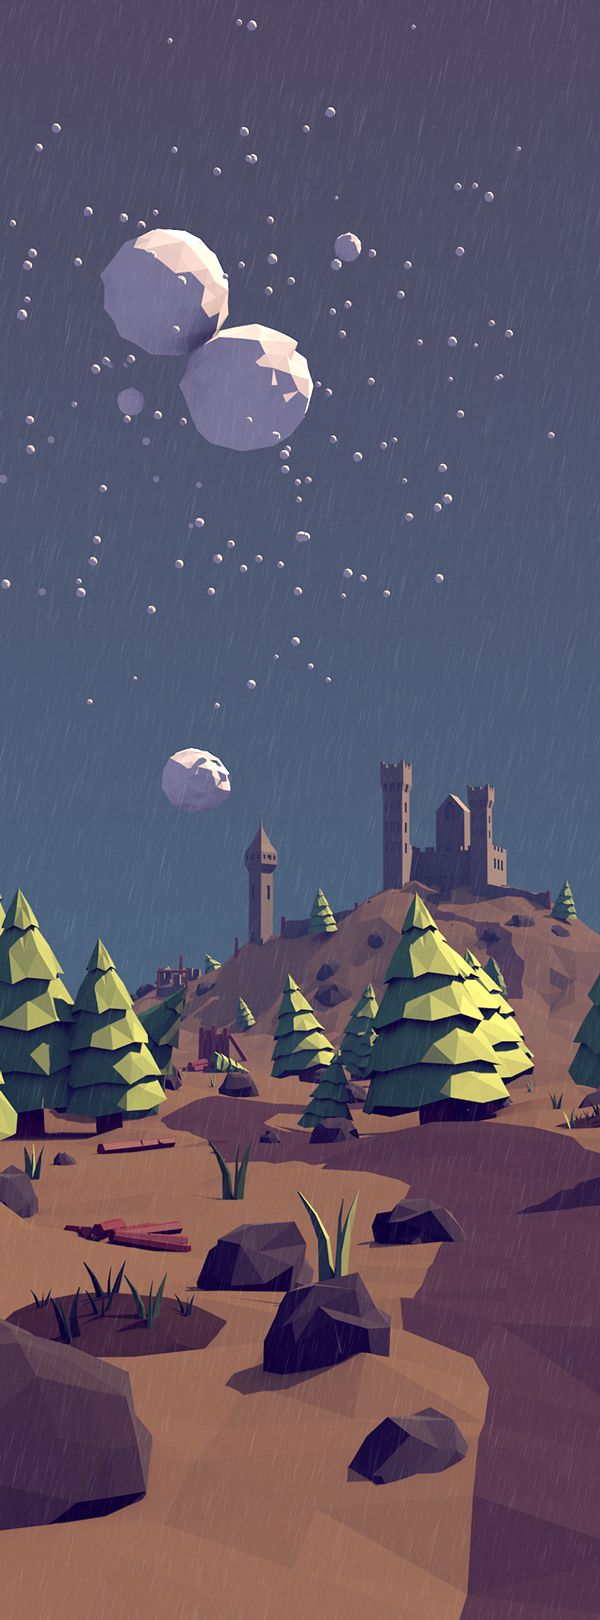 Low Poly Forest Landscape on Behance